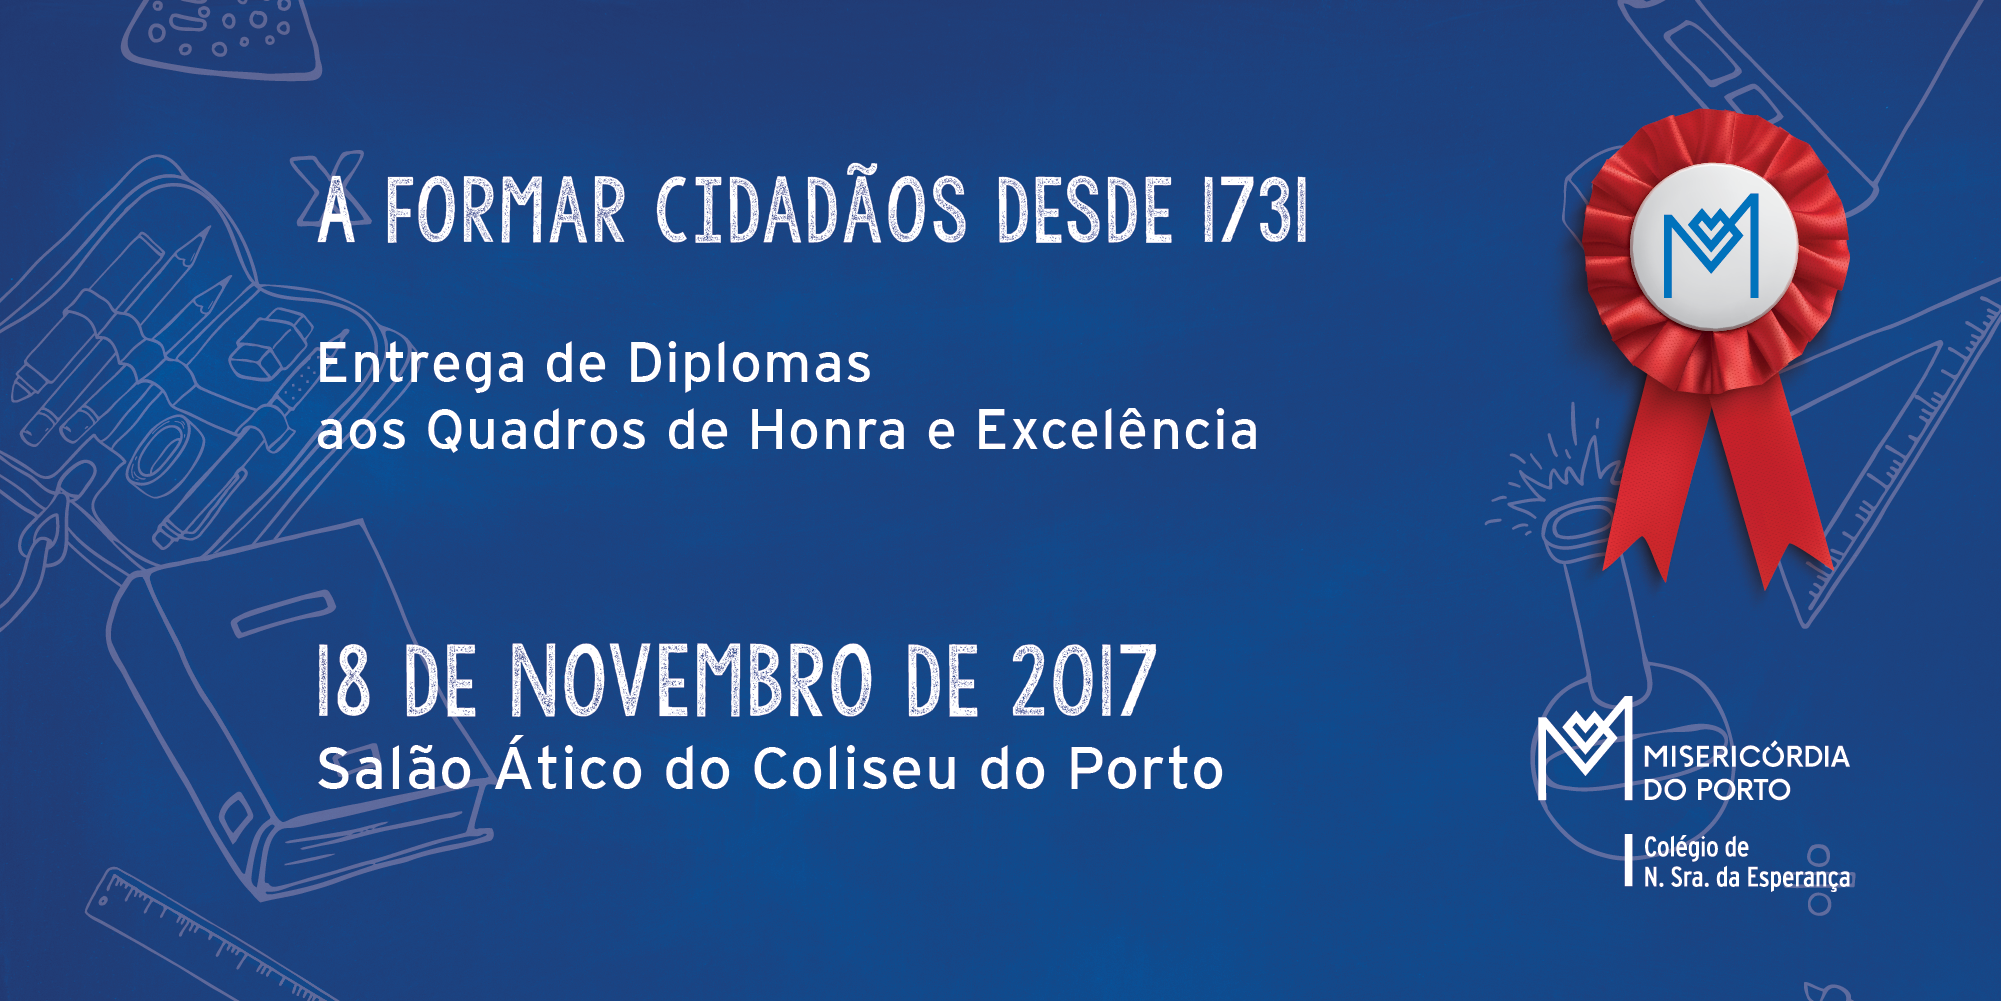 https://www.scmp.pt/assets/misc/img/noticias/2017/2017%2011%2018%20Diploma%20CNSE/banner%20site.png